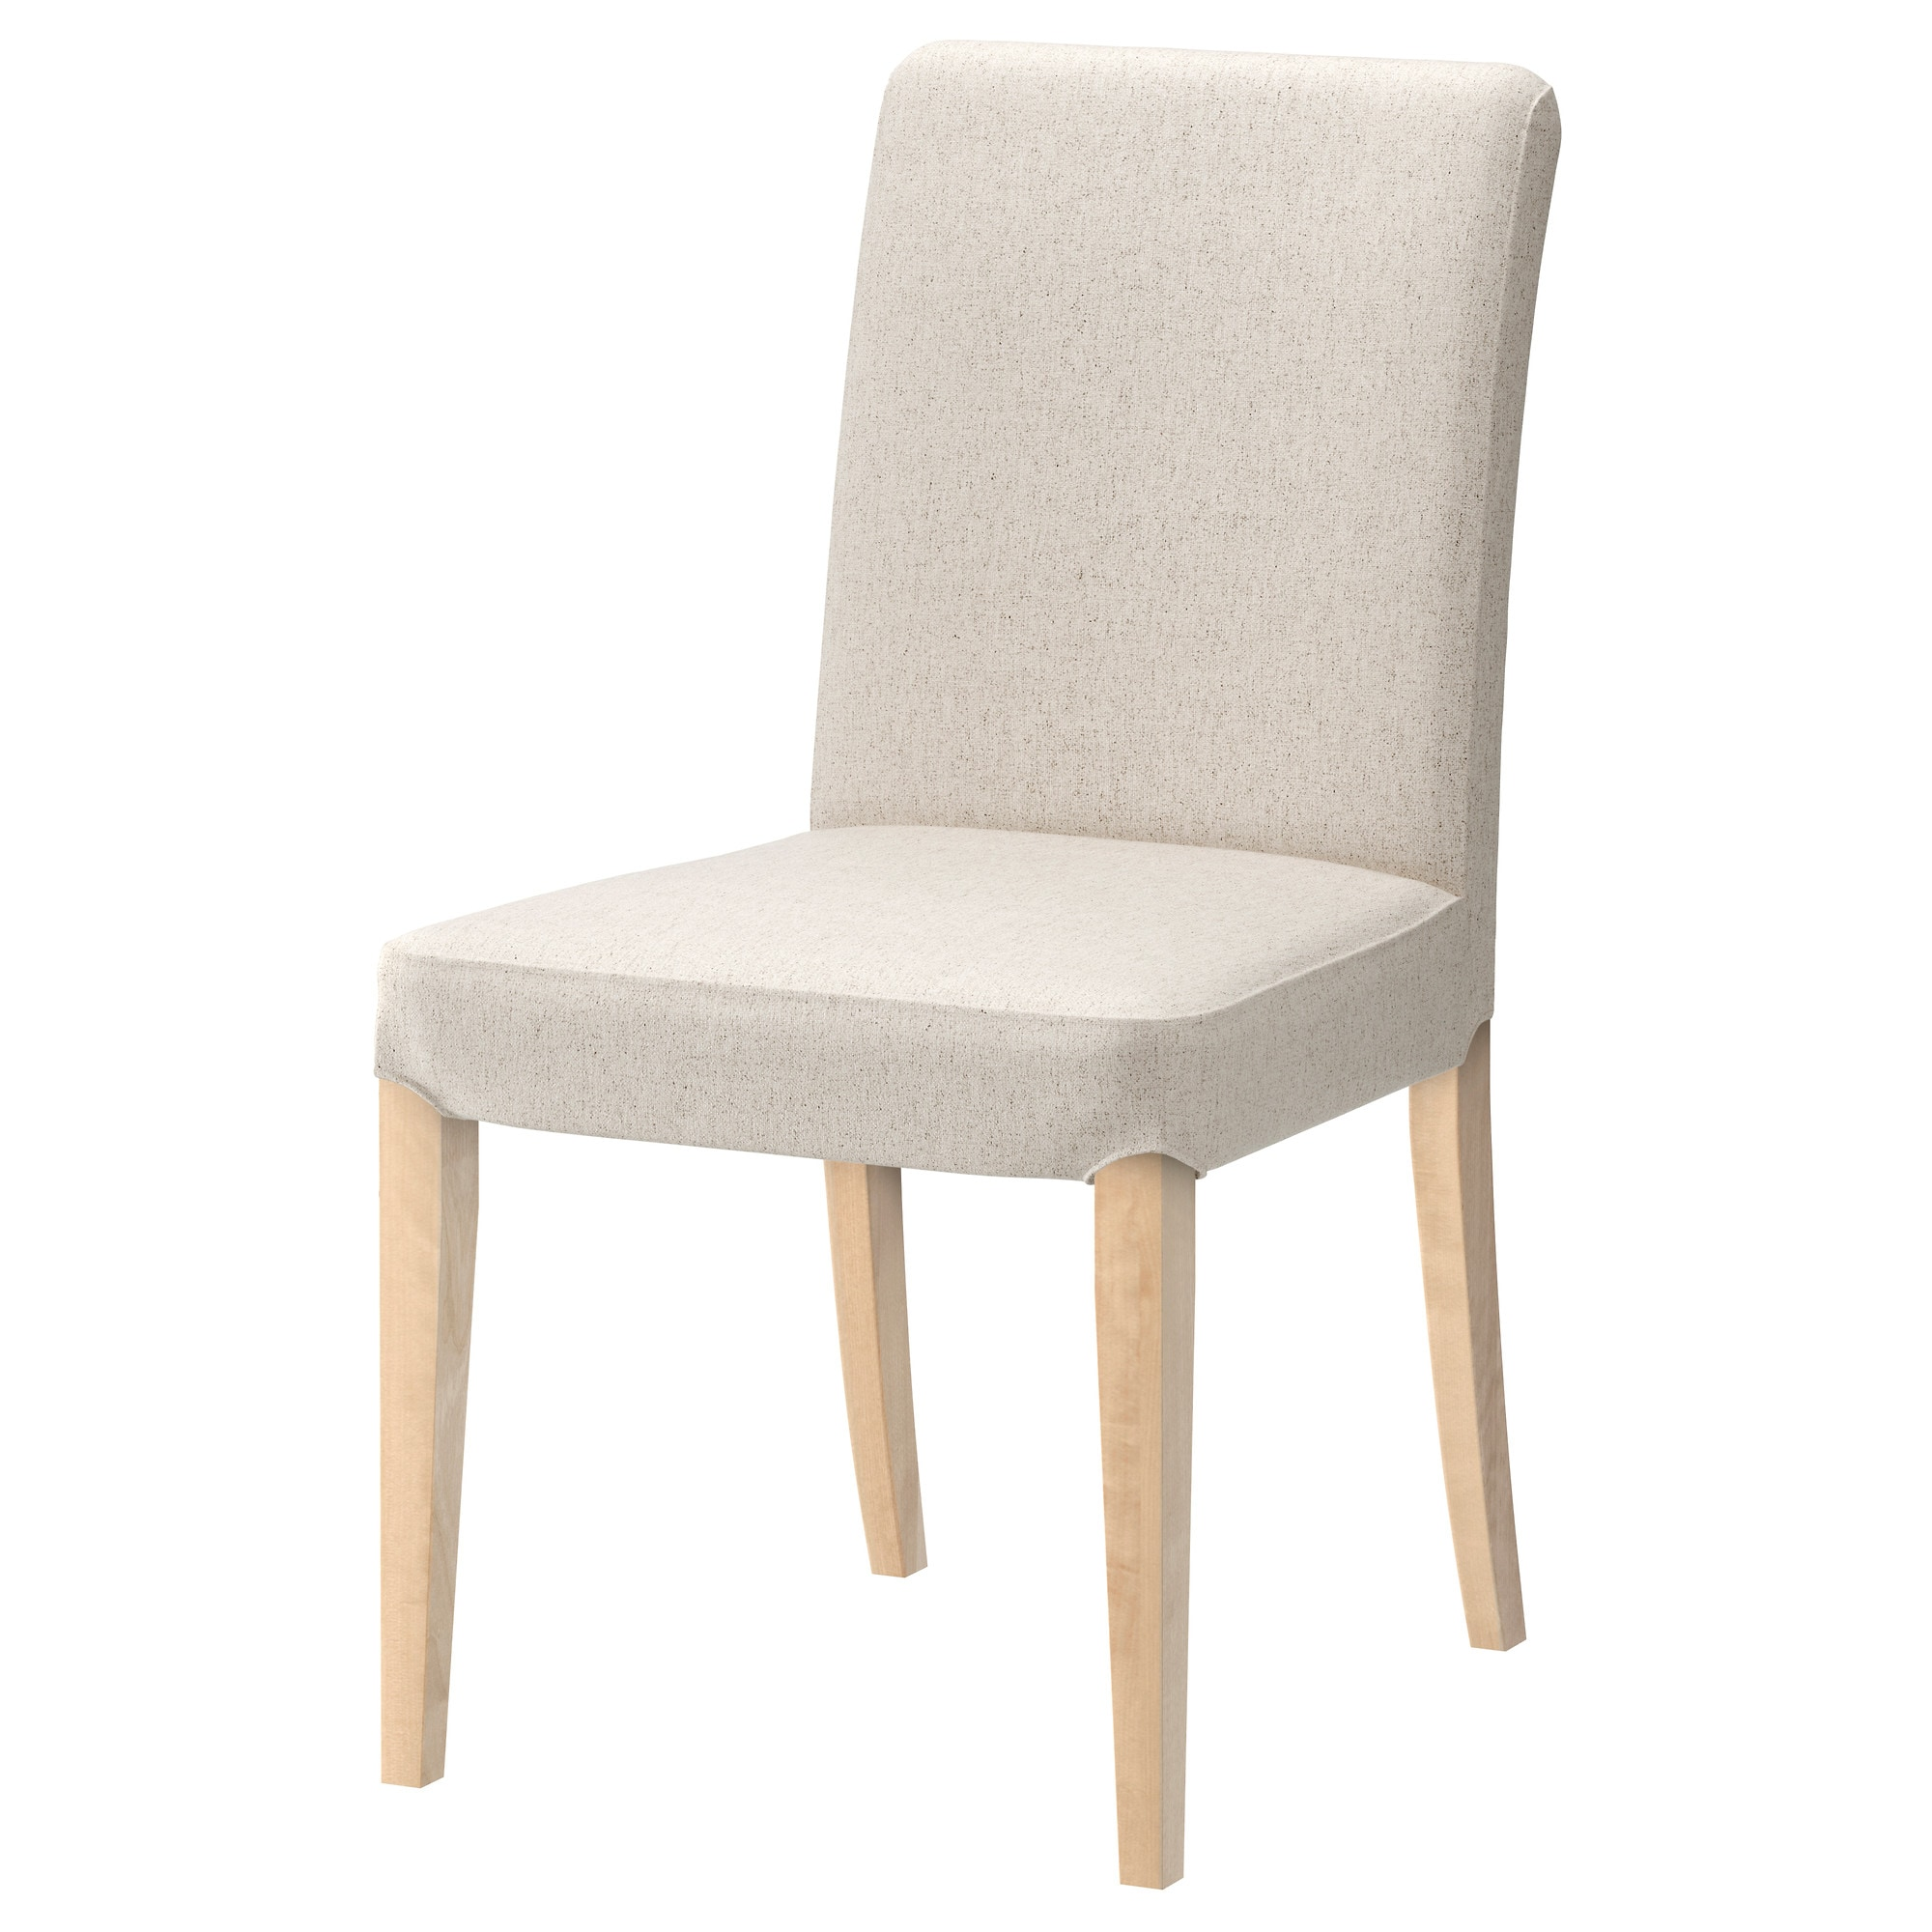 HENRIKSDAL Chair   Linneryd natural   IKEA. High Back Dining Chairs Ikea. Home Design Ideas